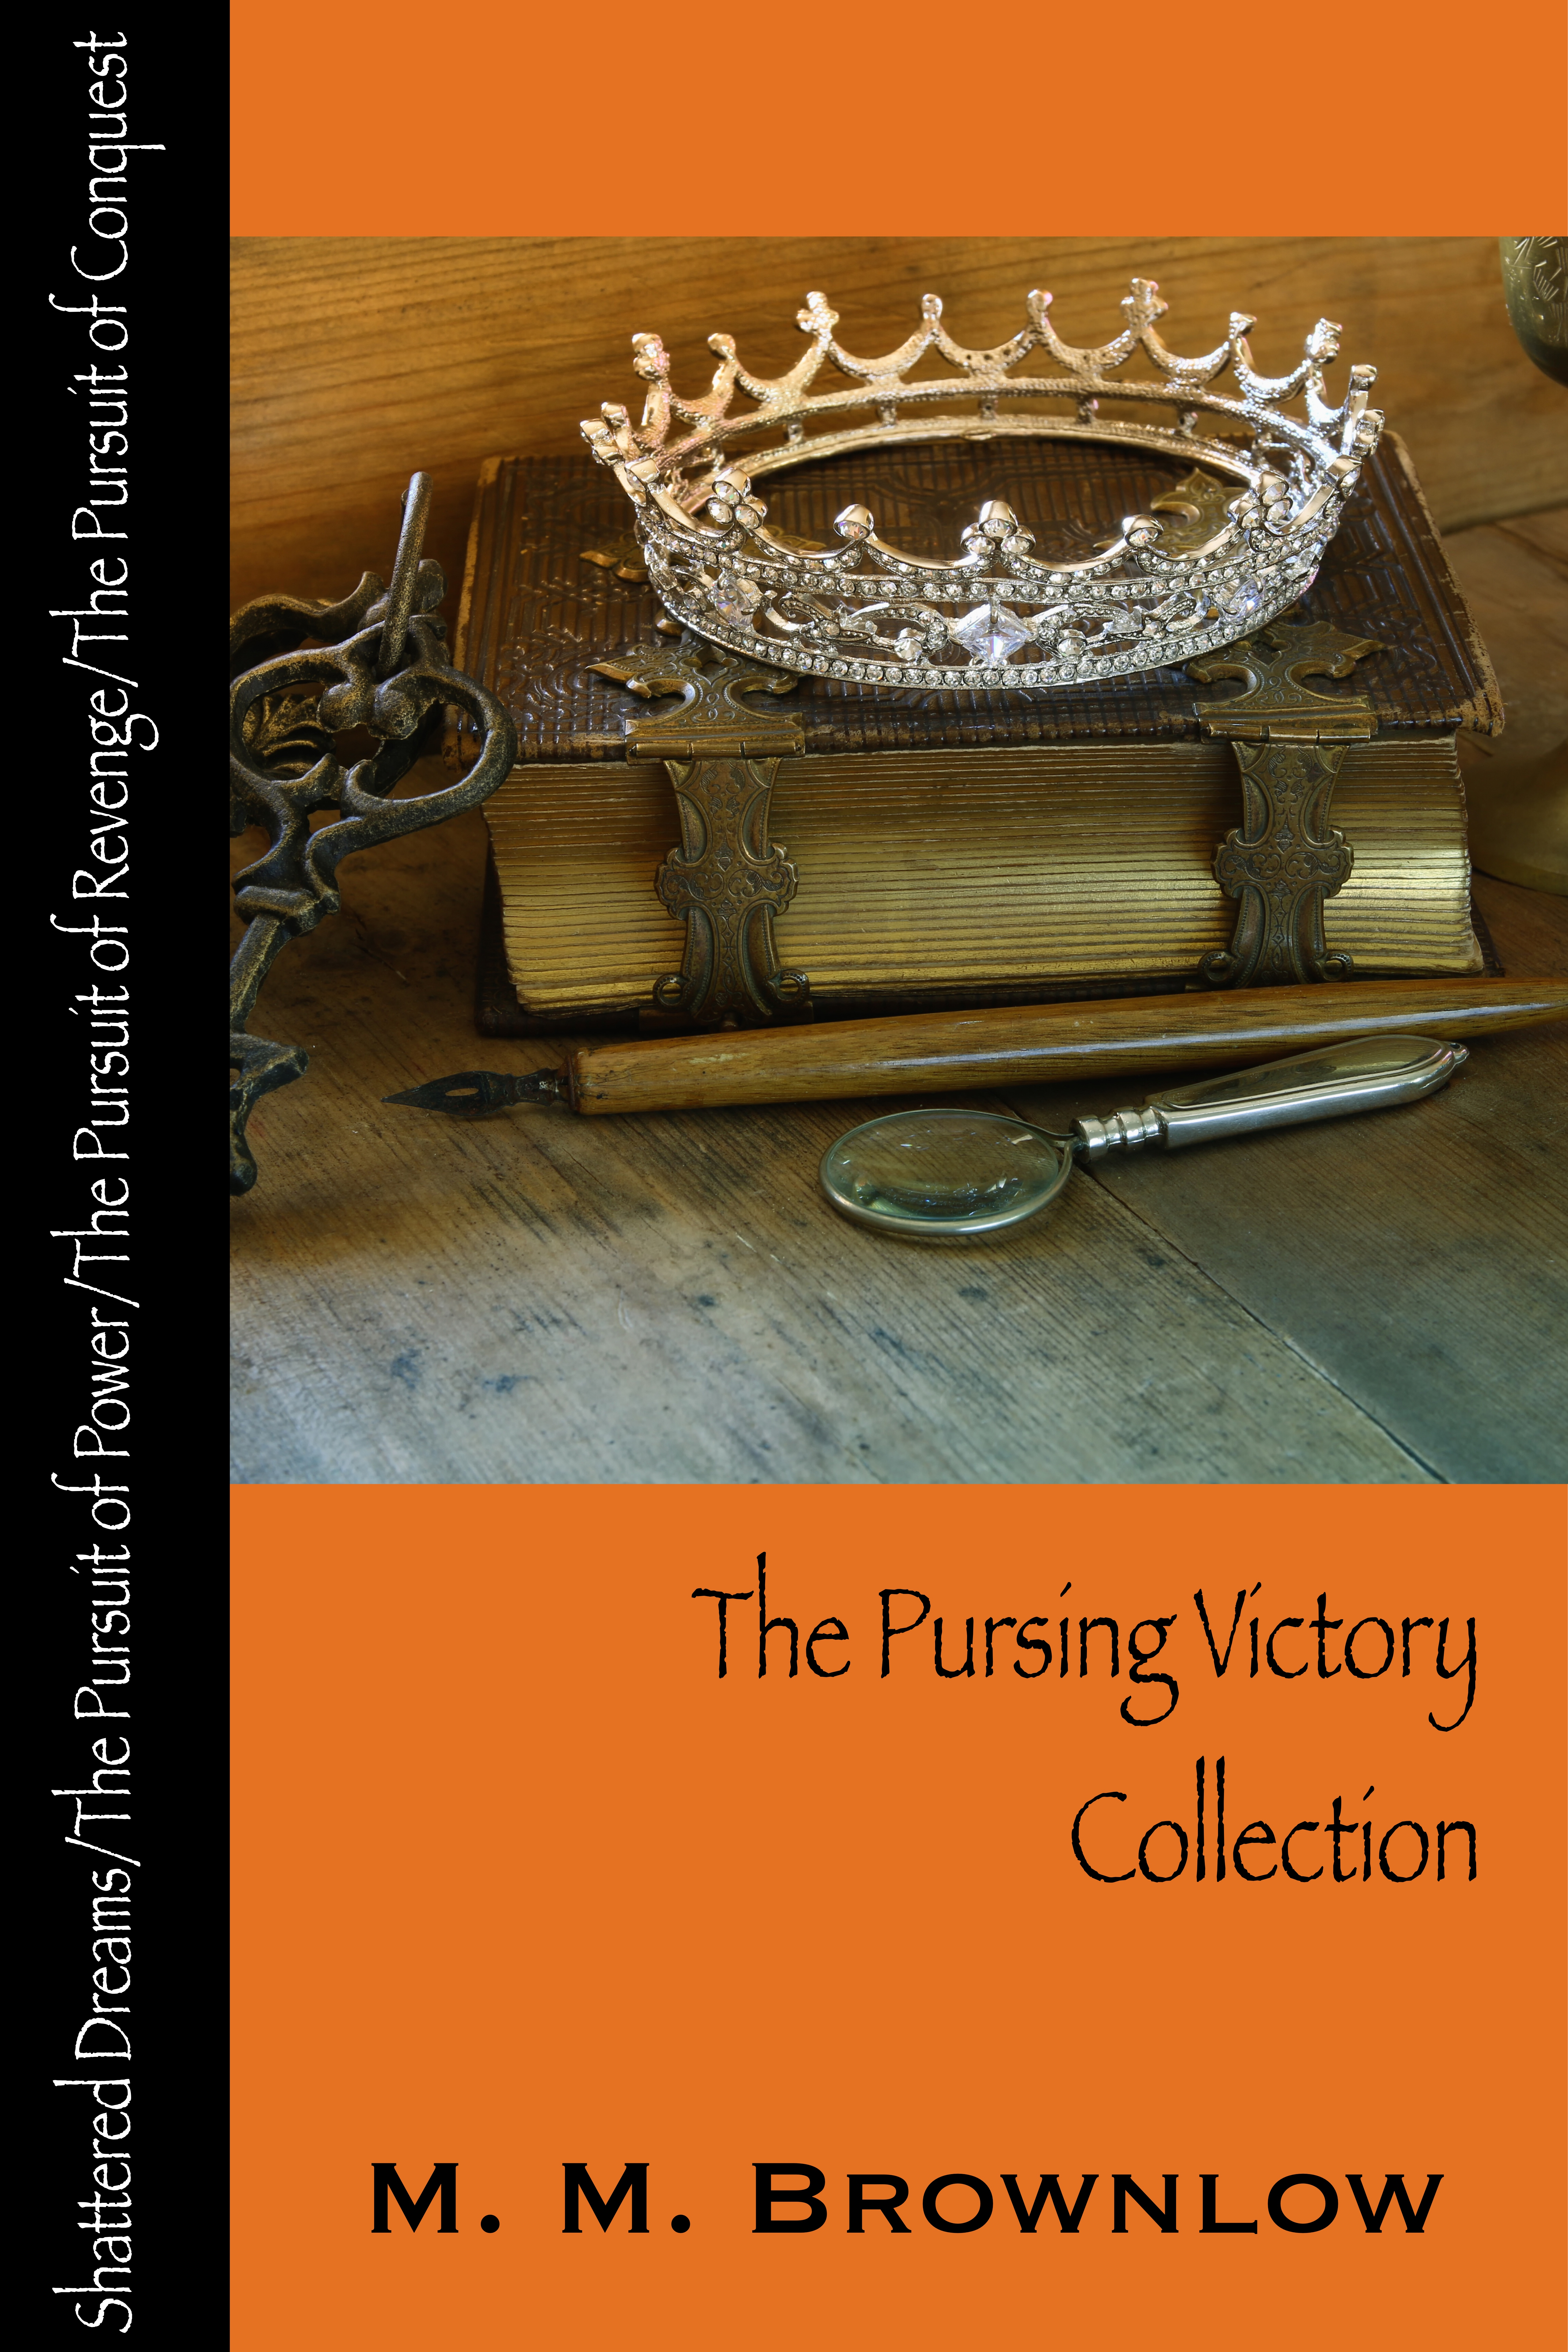 The Pursuing Victory Collection, an Ebook by M M  Brownlow